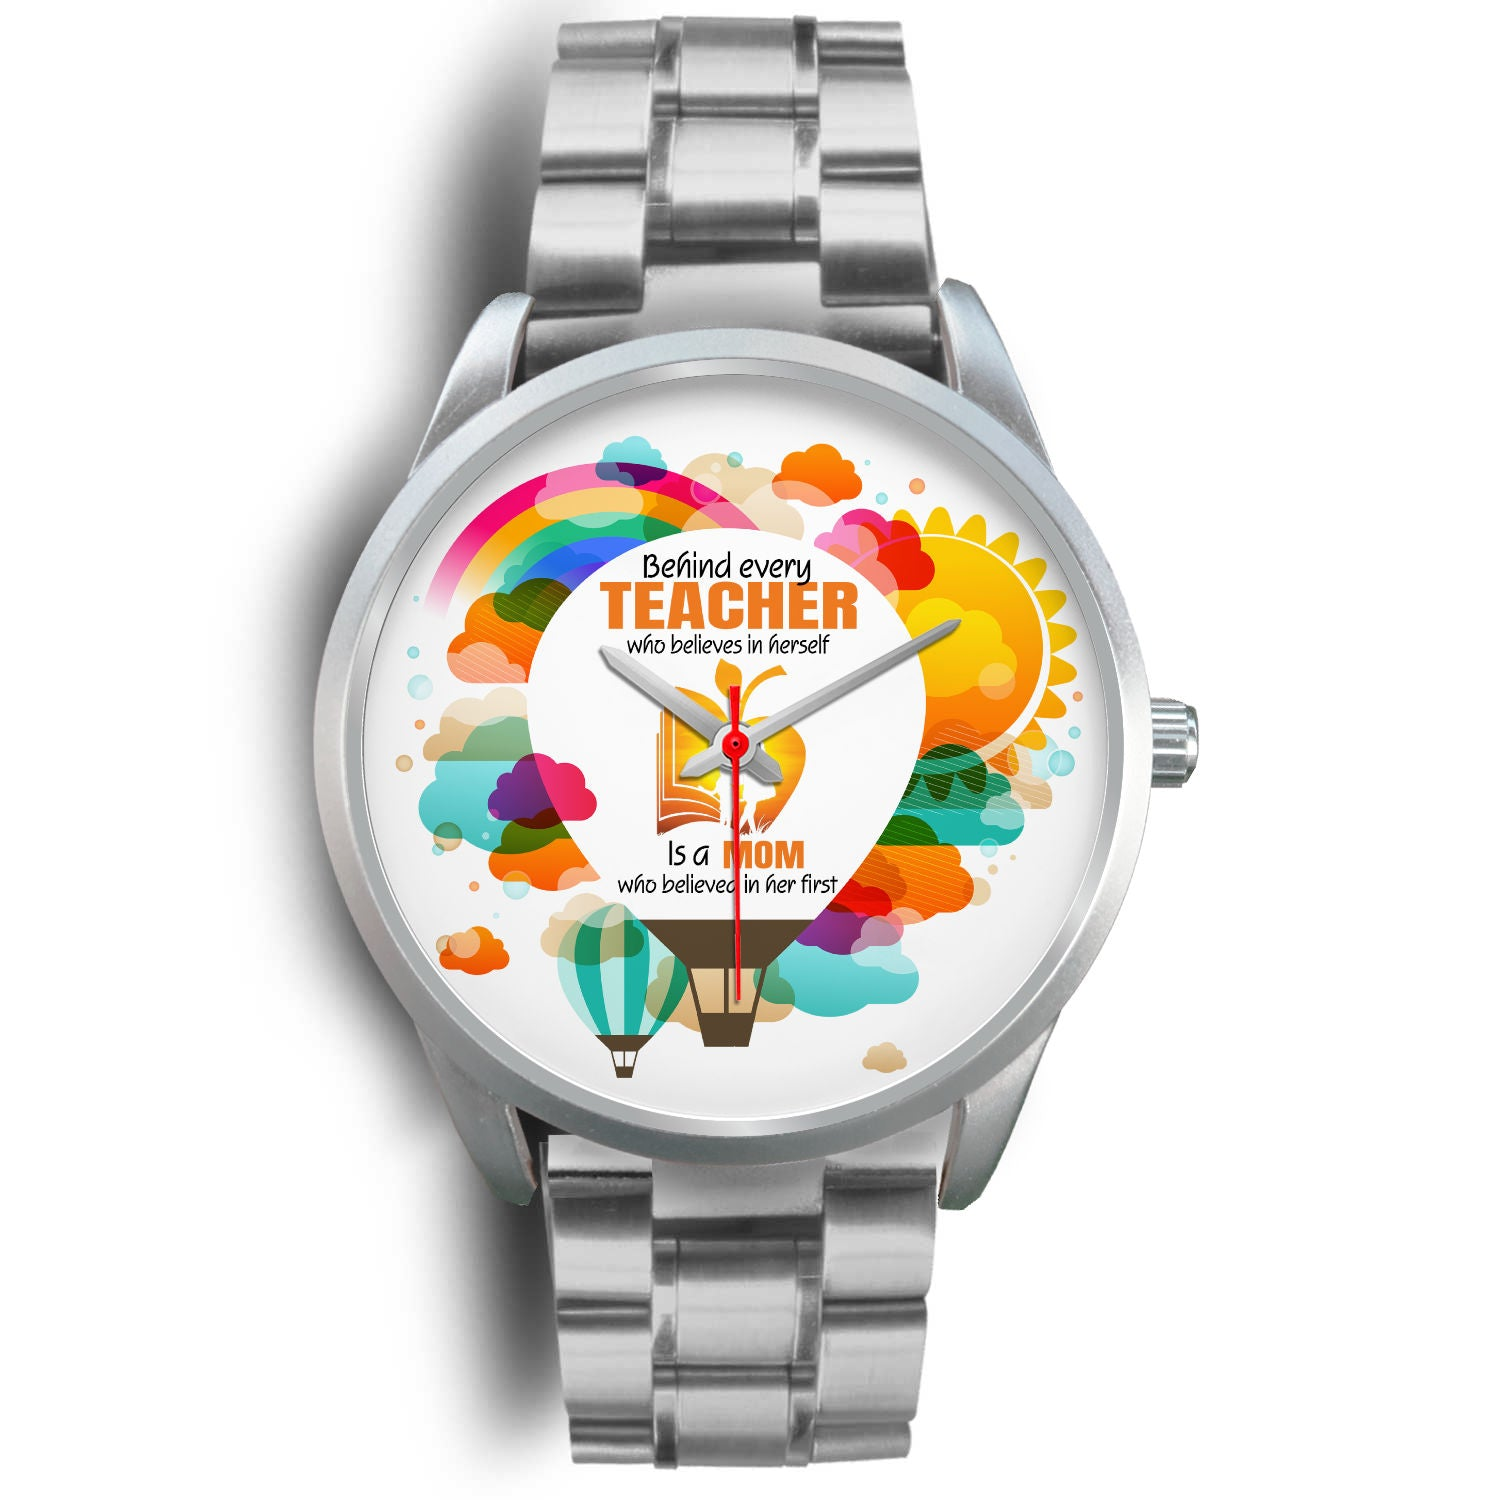 VIRA silver stainless steel watch for awesome teachers & moms